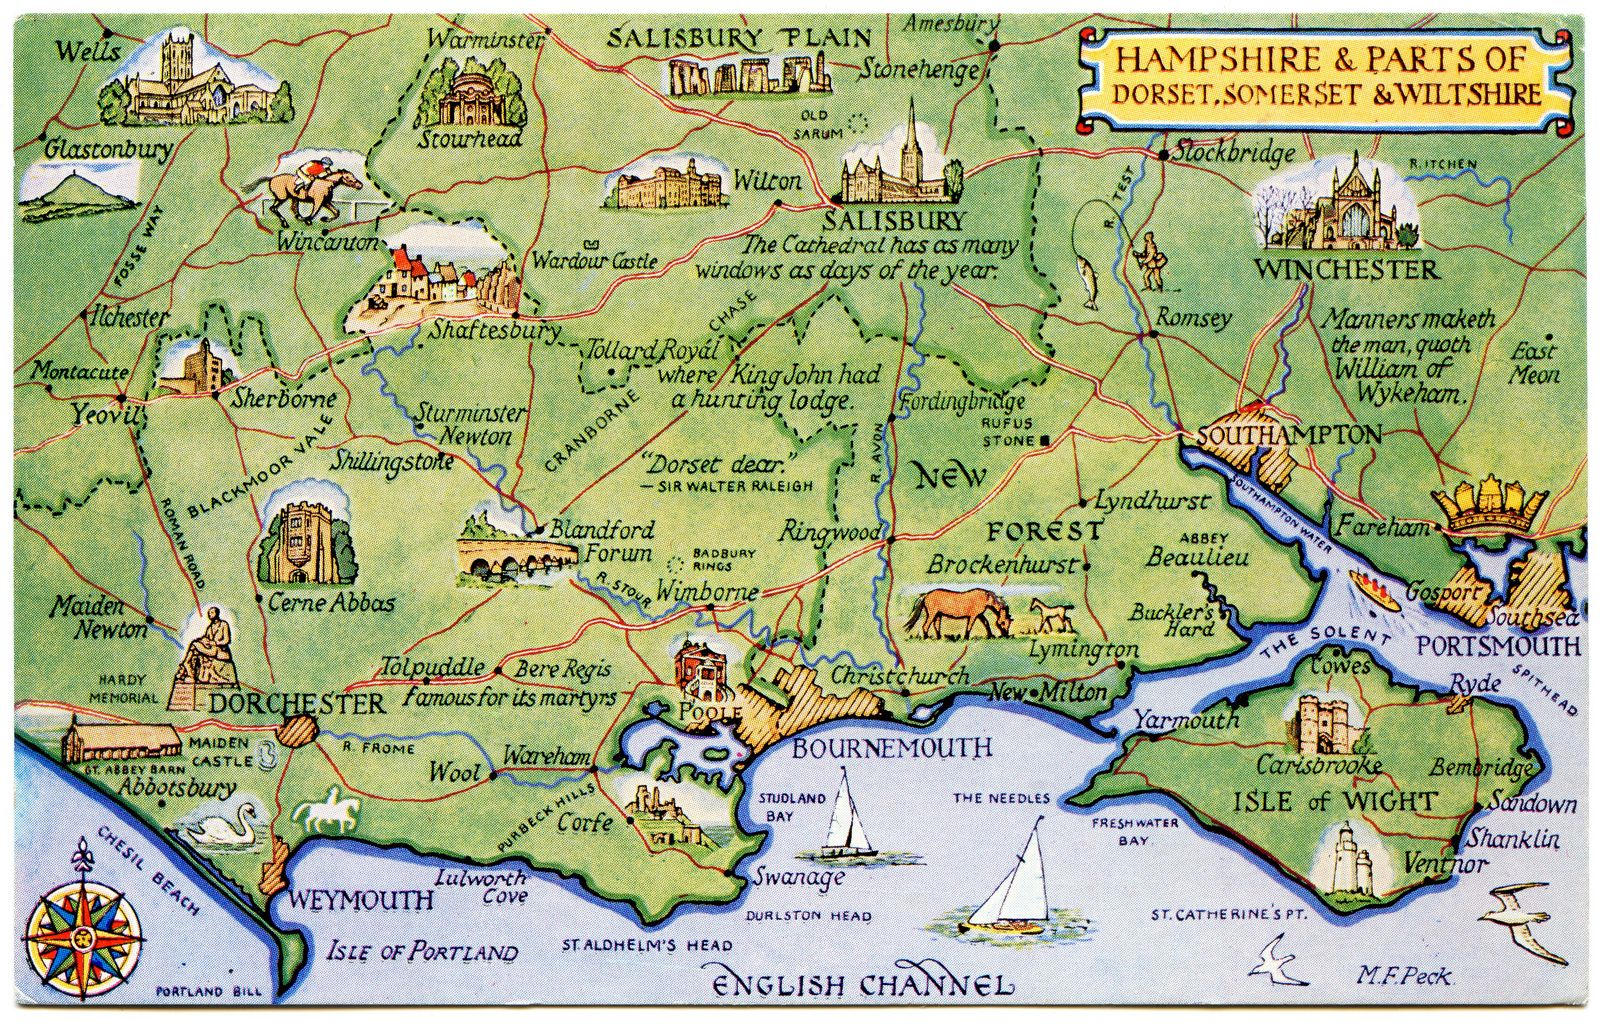 map of wiltshire and hampshire Postcard Map Of Hampshire And Parts Of Dorset Somerset And map of wiltshire and hampshire